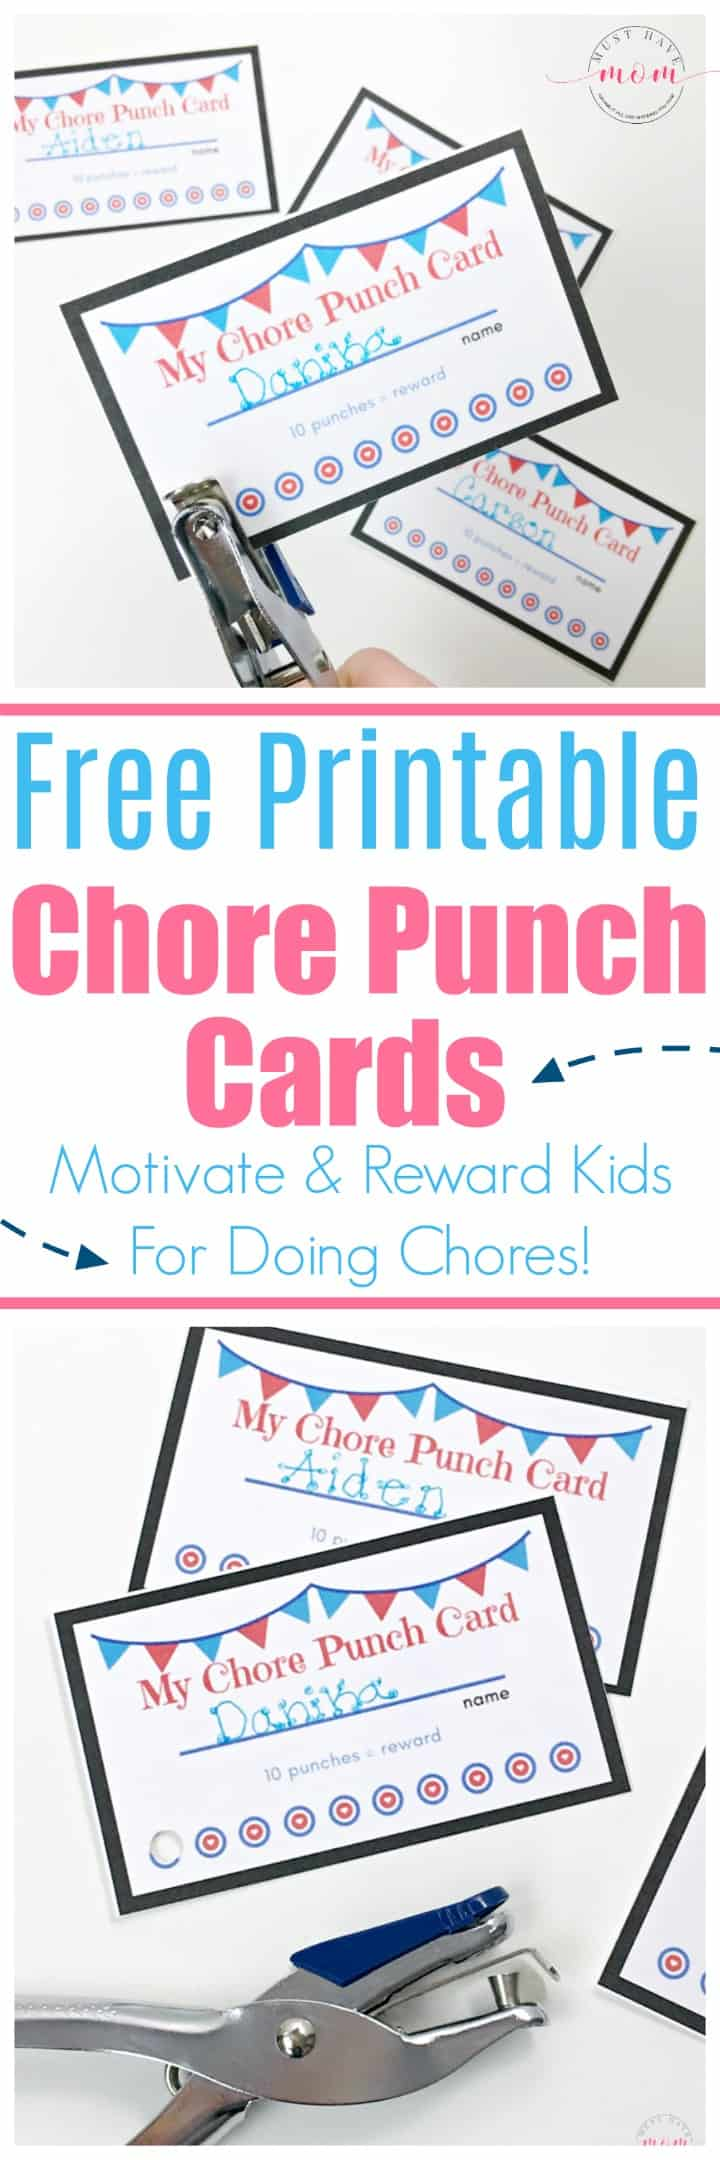 This is a graphic of Punchy Free Printable Punch Cards